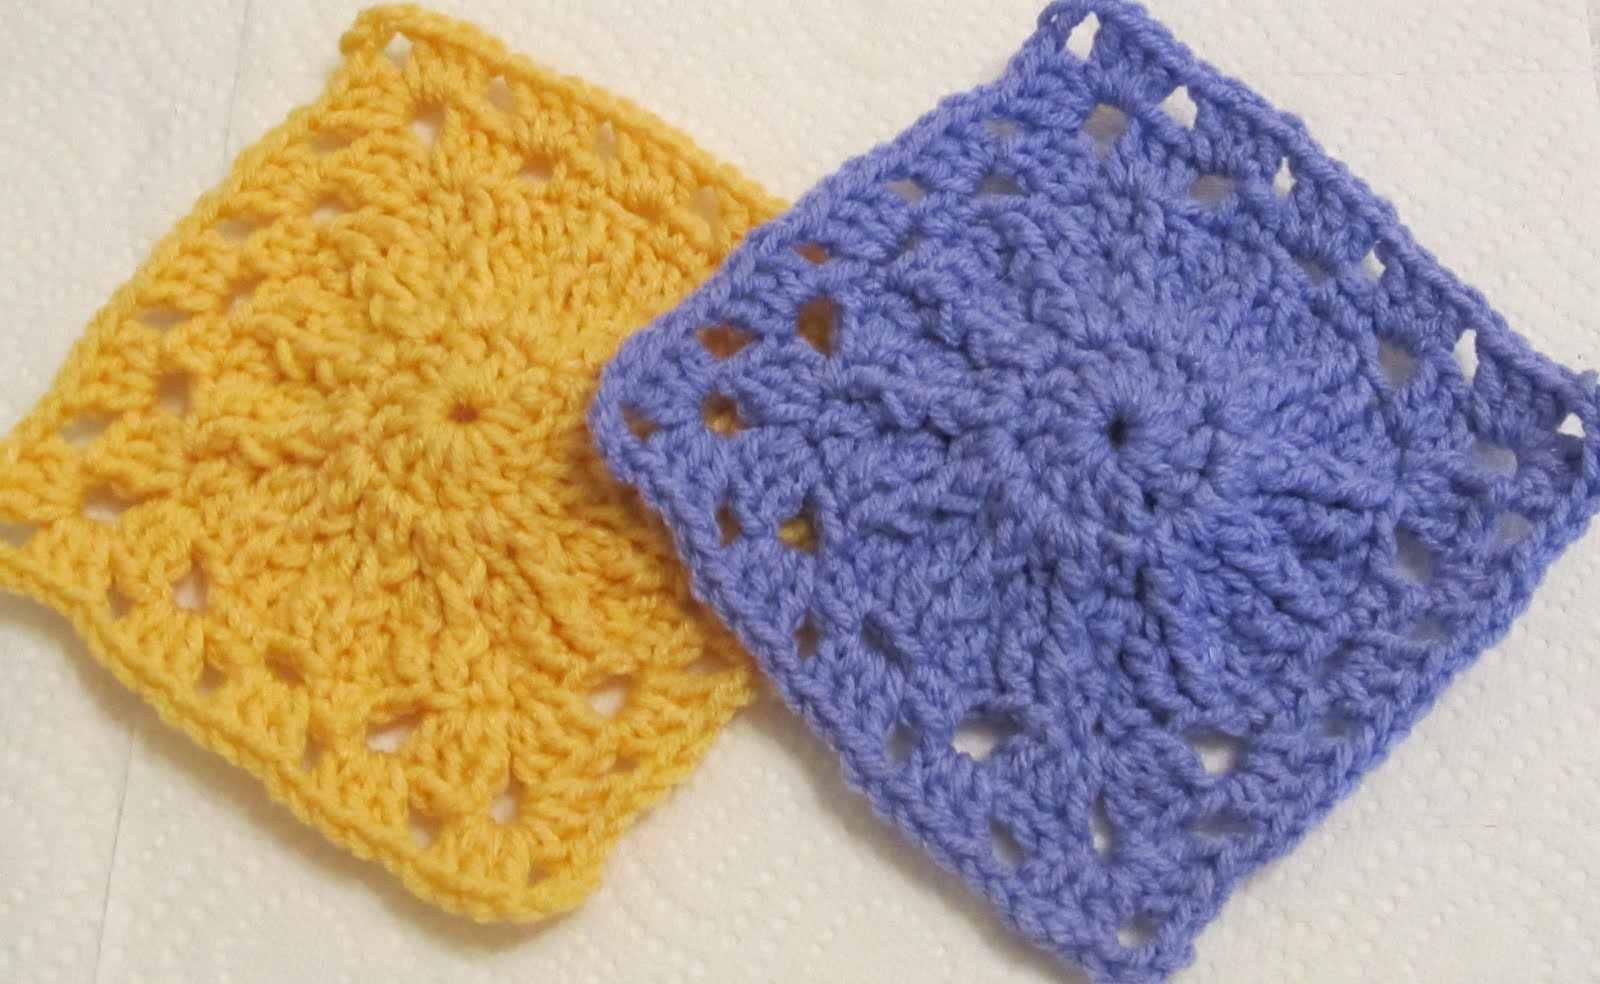 Crochet Patterns Squares : SmoothFox Crochet and Knit: SmoothFox Charity Square Nbr 1 thru 4 ...